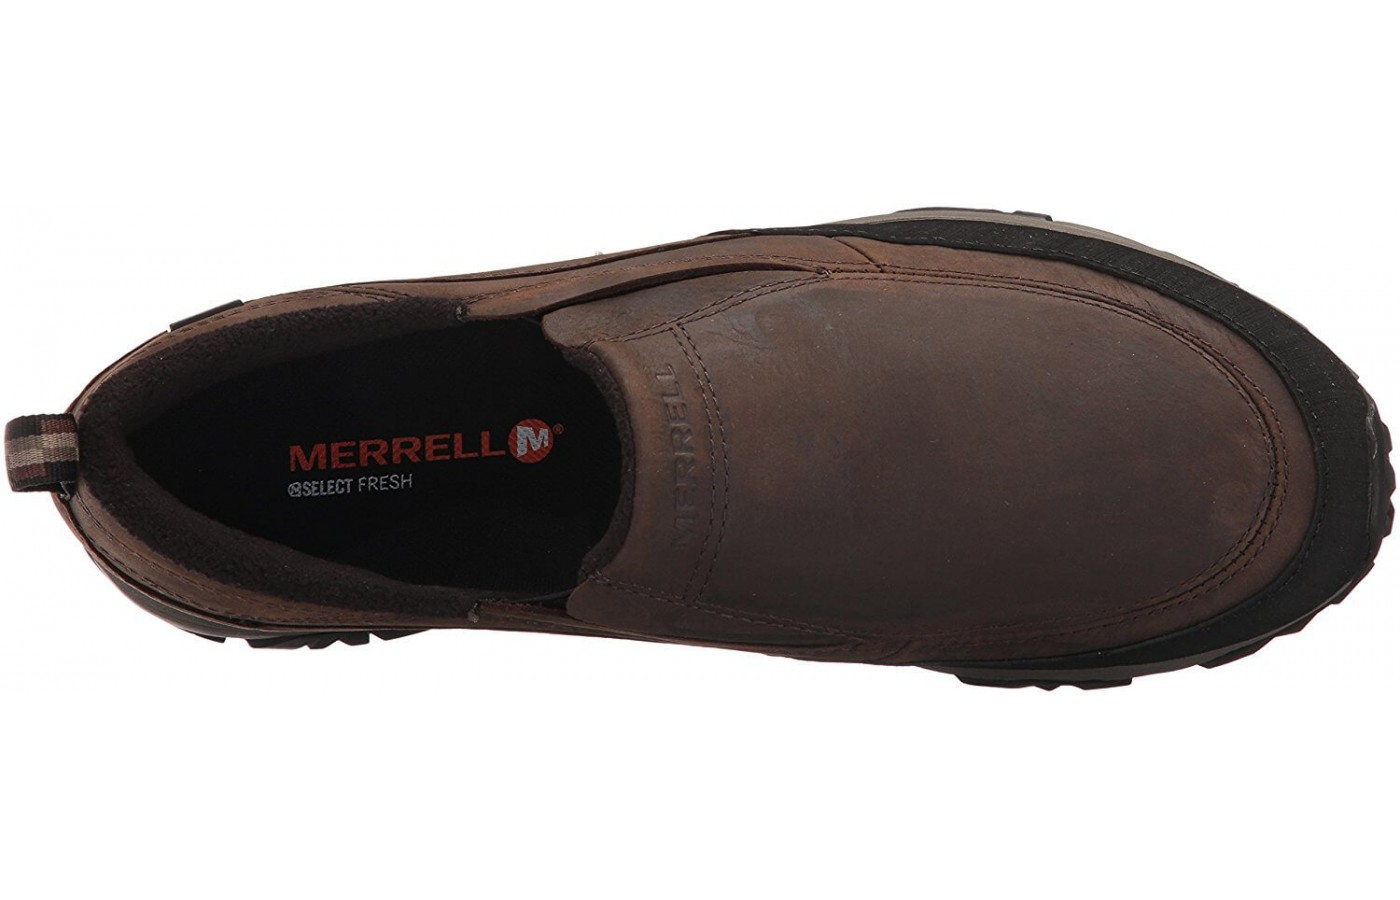 A top view of the Merrell ColdPack Ice.